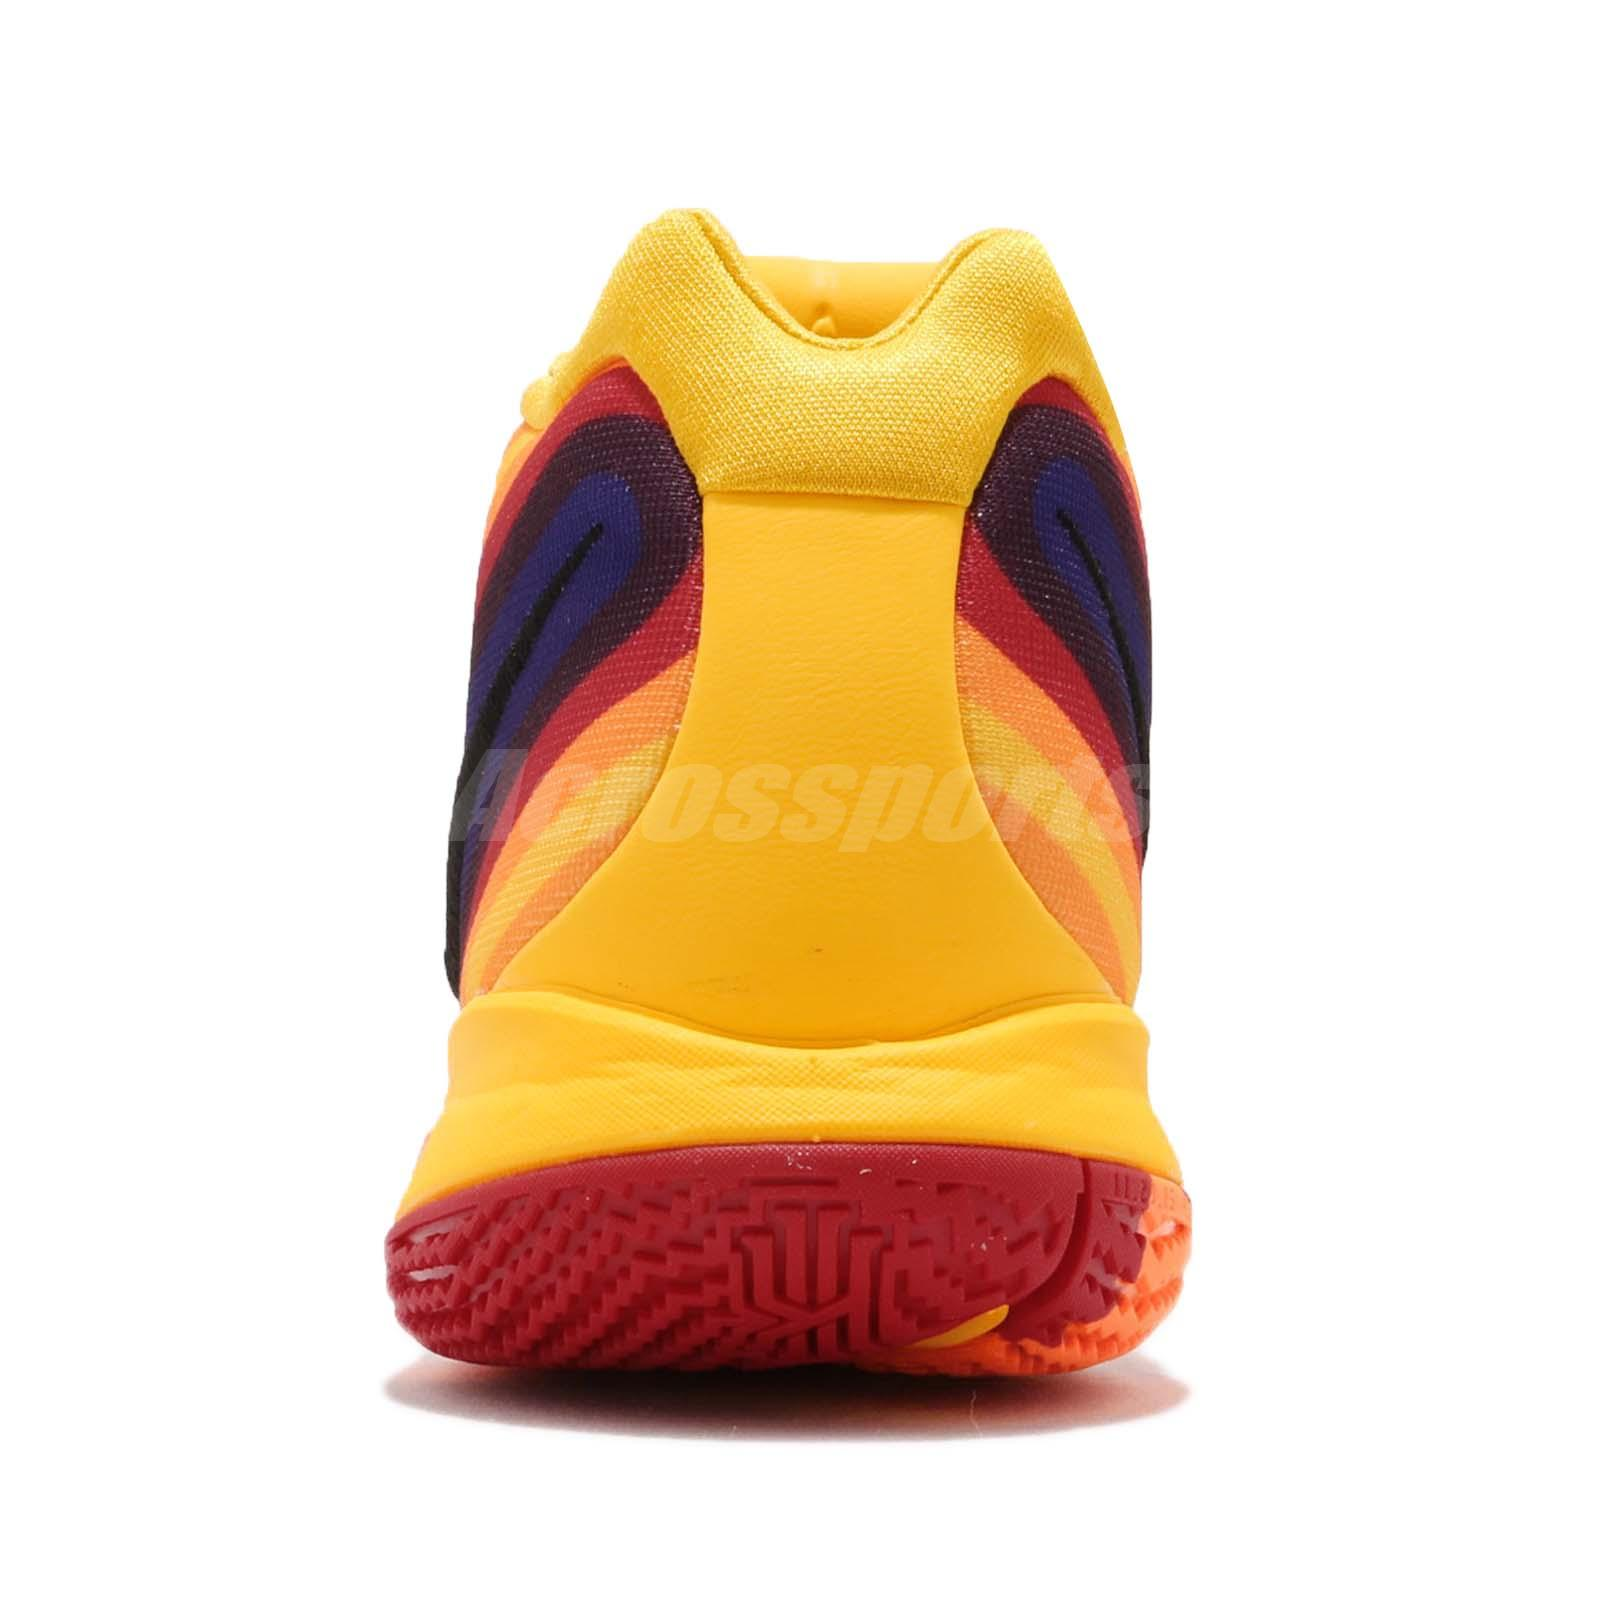 9ecd2af4f01 Nike Kyrie 4 EP 70s Uncle Drew Decades Pack Yellow Basketball Shoes ...